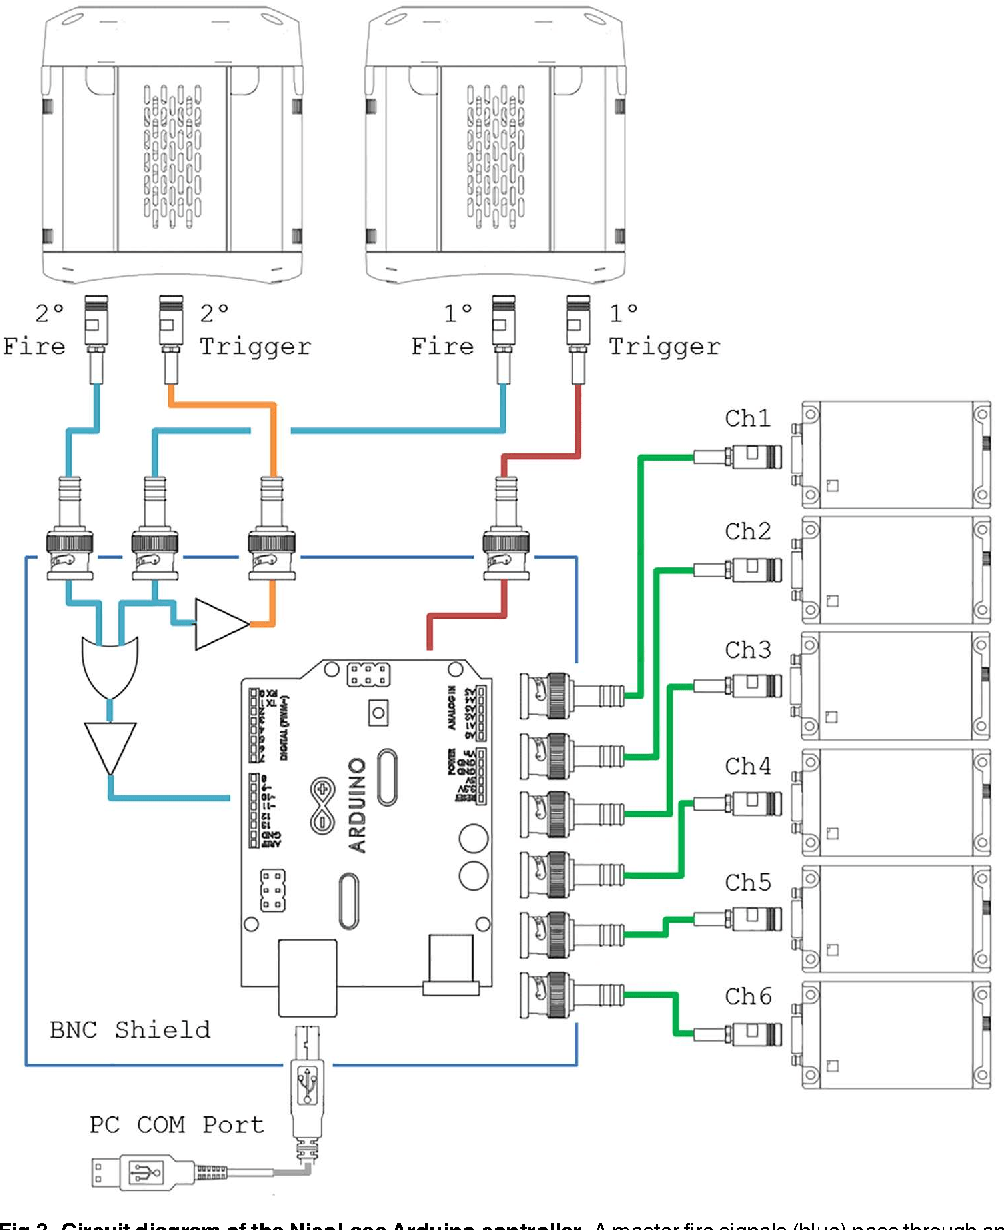 hight resolution of circuit diagram of the nicolase arduino controller a master fire signals